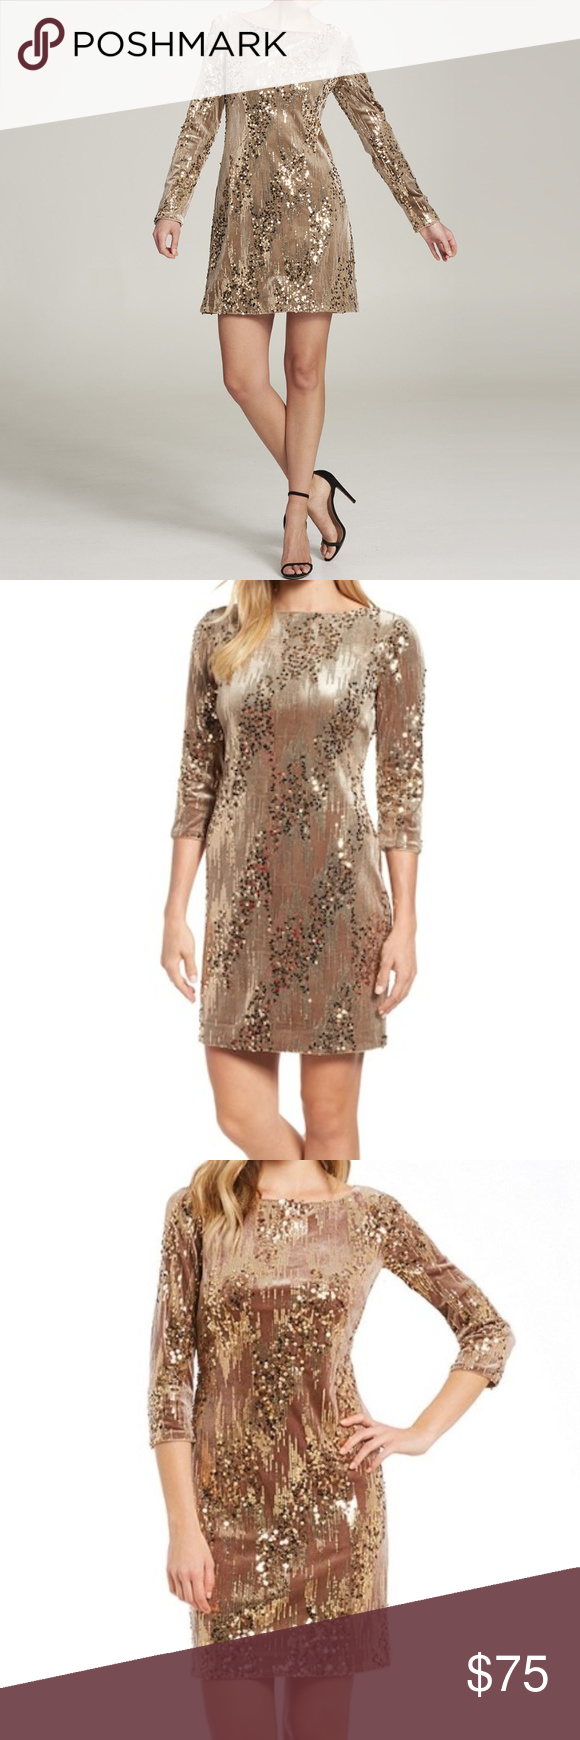 11b53402 Eliza J Sequin & Velvet Sheath Dress Asymmetrical stripes of sequins over  velvet bring rich texture and shine to a sophisticated sheath that's  perfect for ...